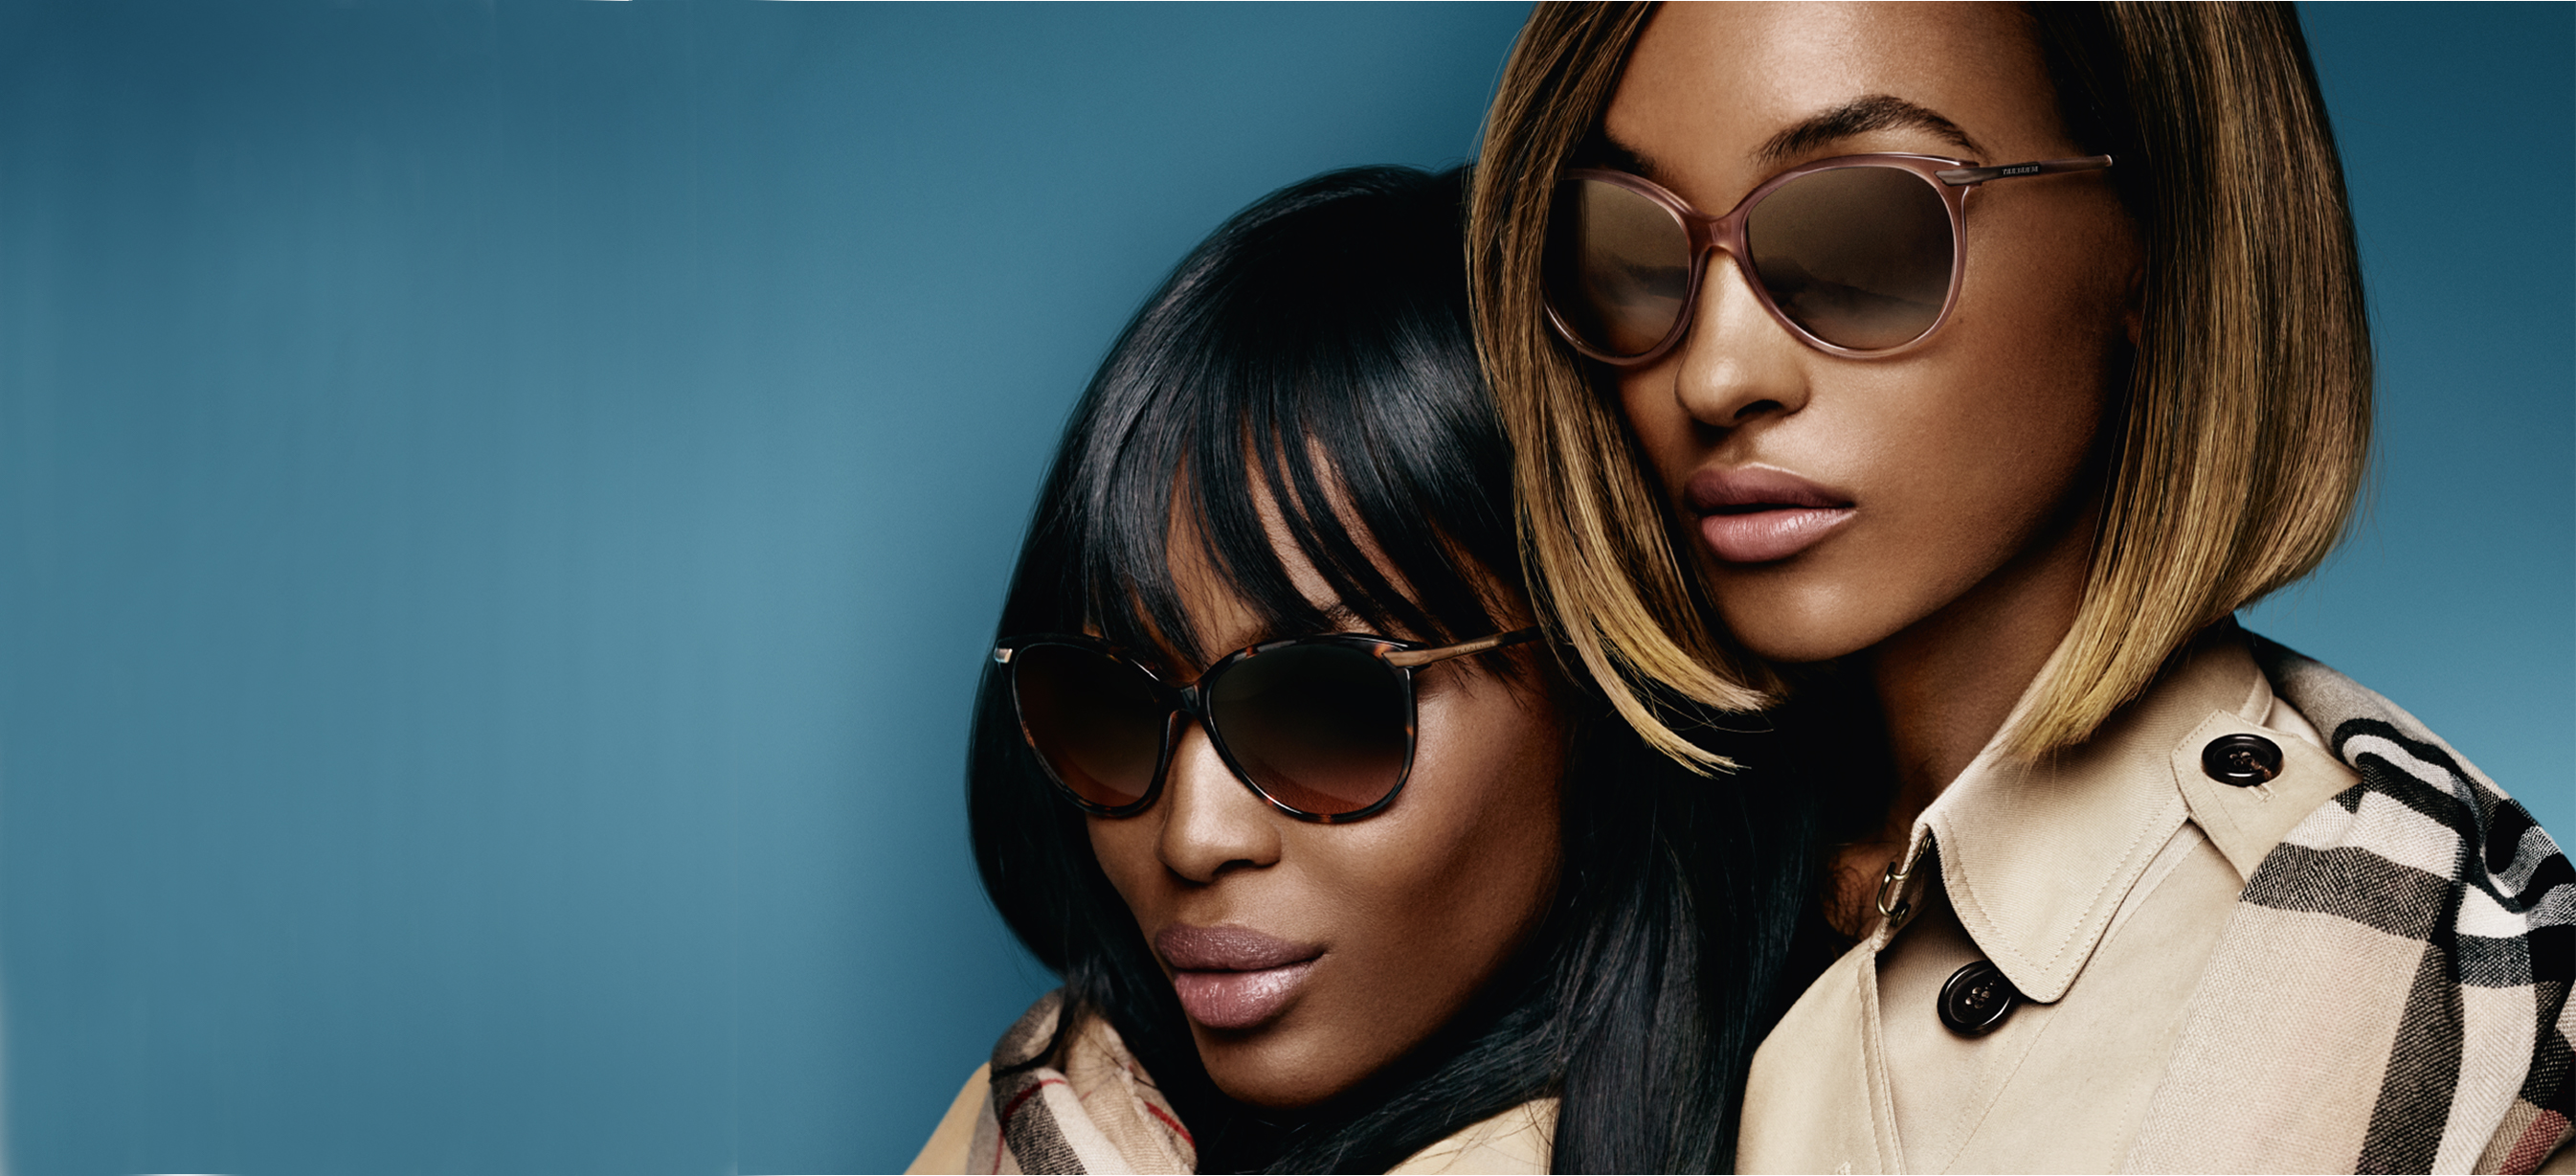 Crafting a digital magazine to put Luxottica firmly in the frame